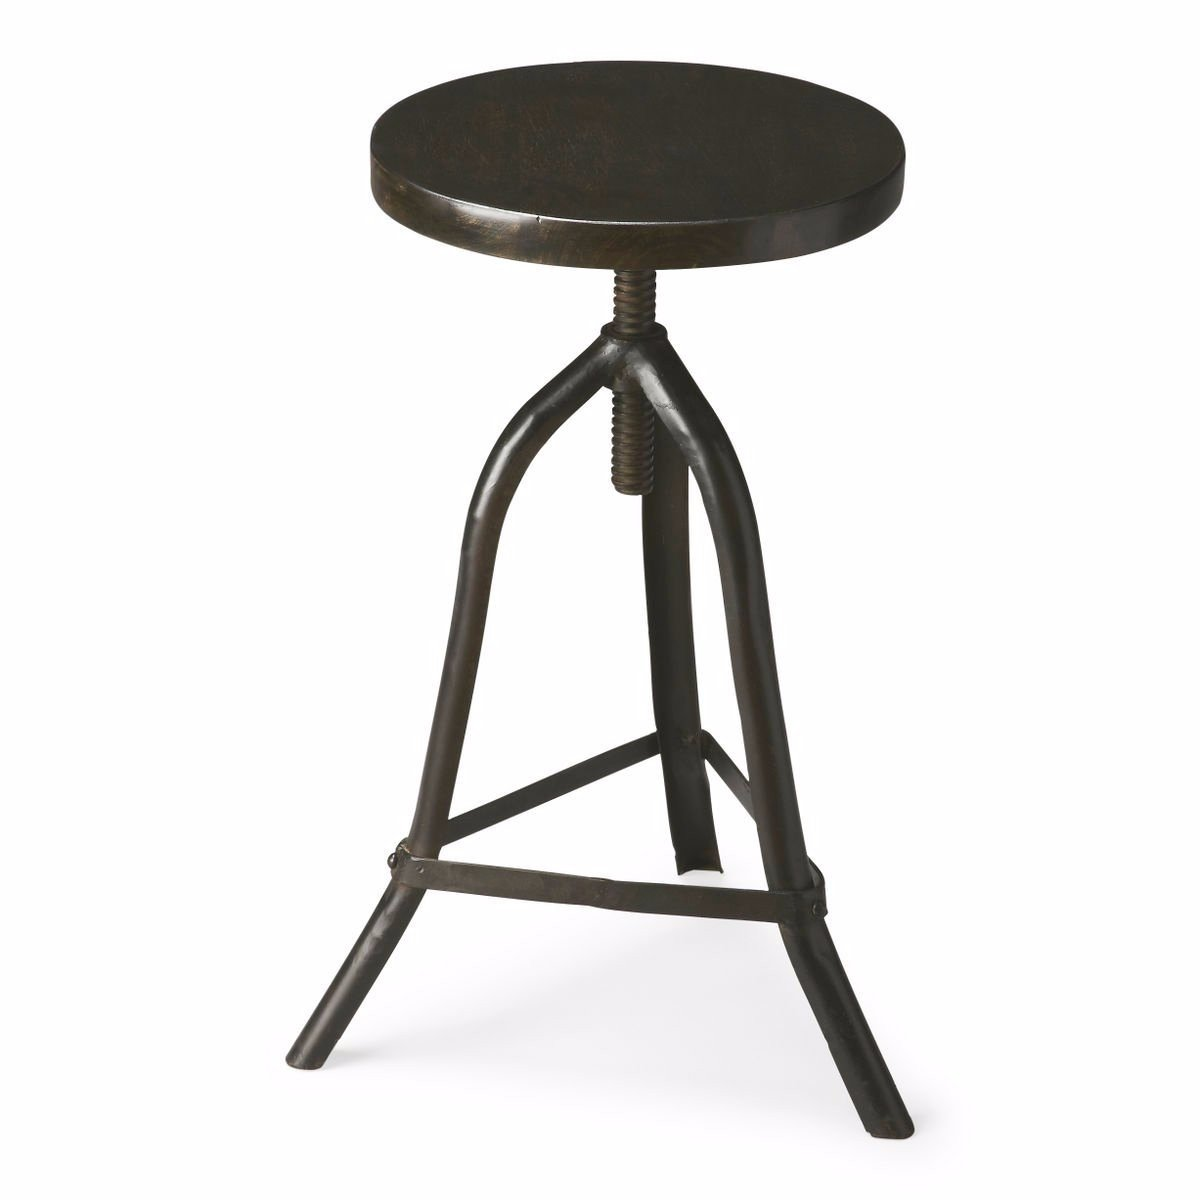 Ambiant REVOLVING STOOL by Ambiant